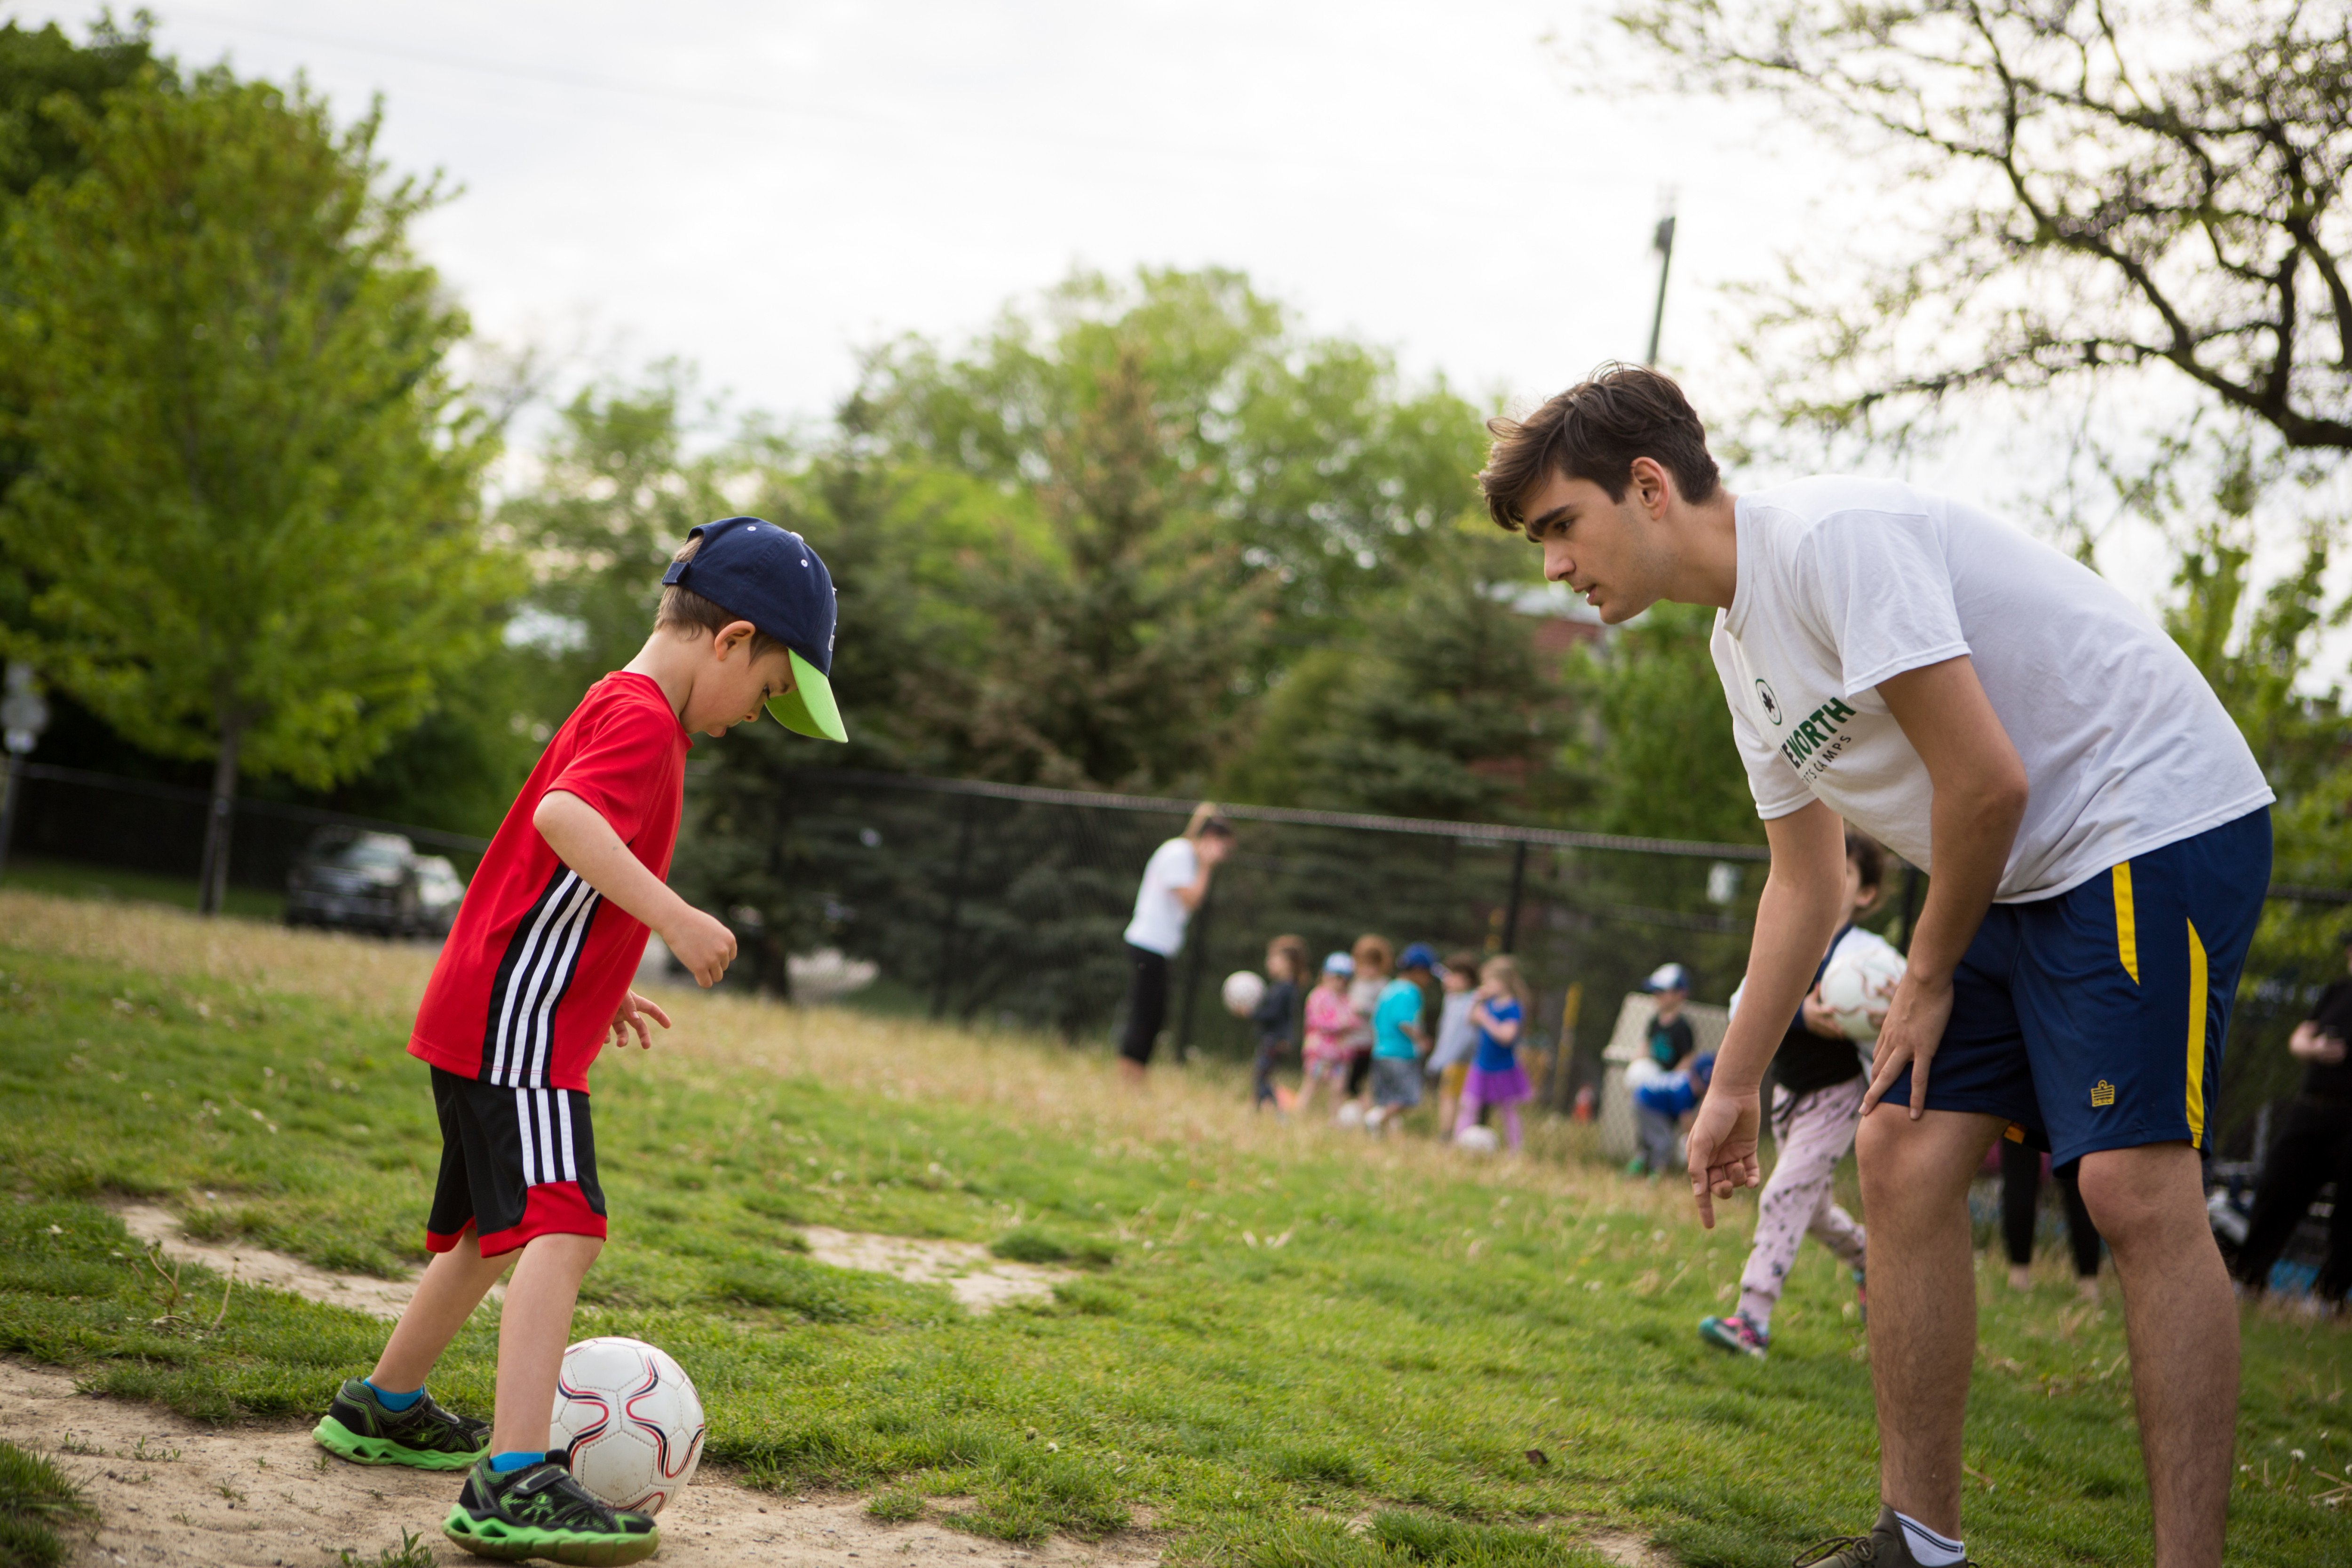 How Sports Build Healthy Communities